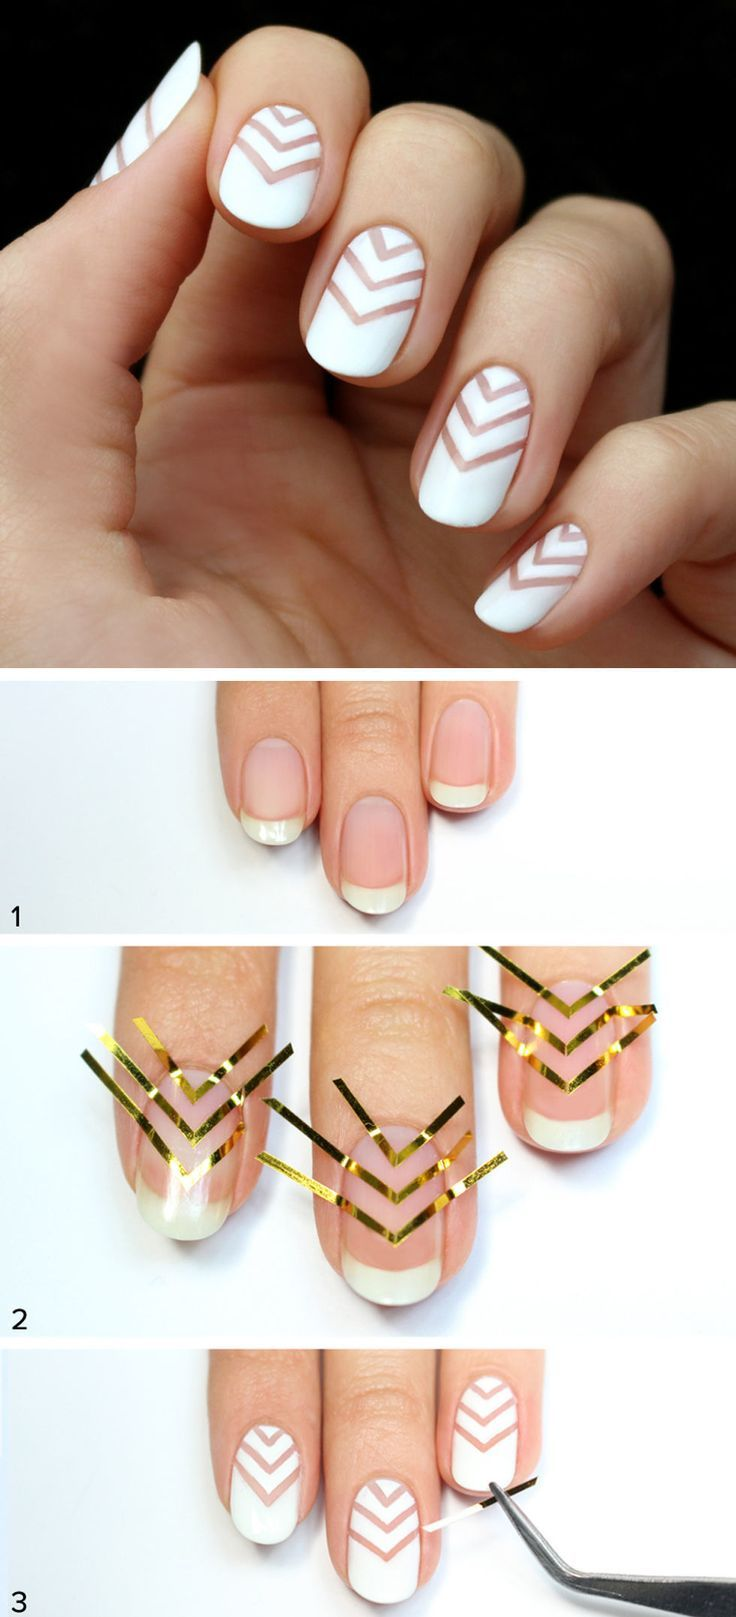 21 best Nail Art DIY images on Pinterest | Nail design, Make up ...